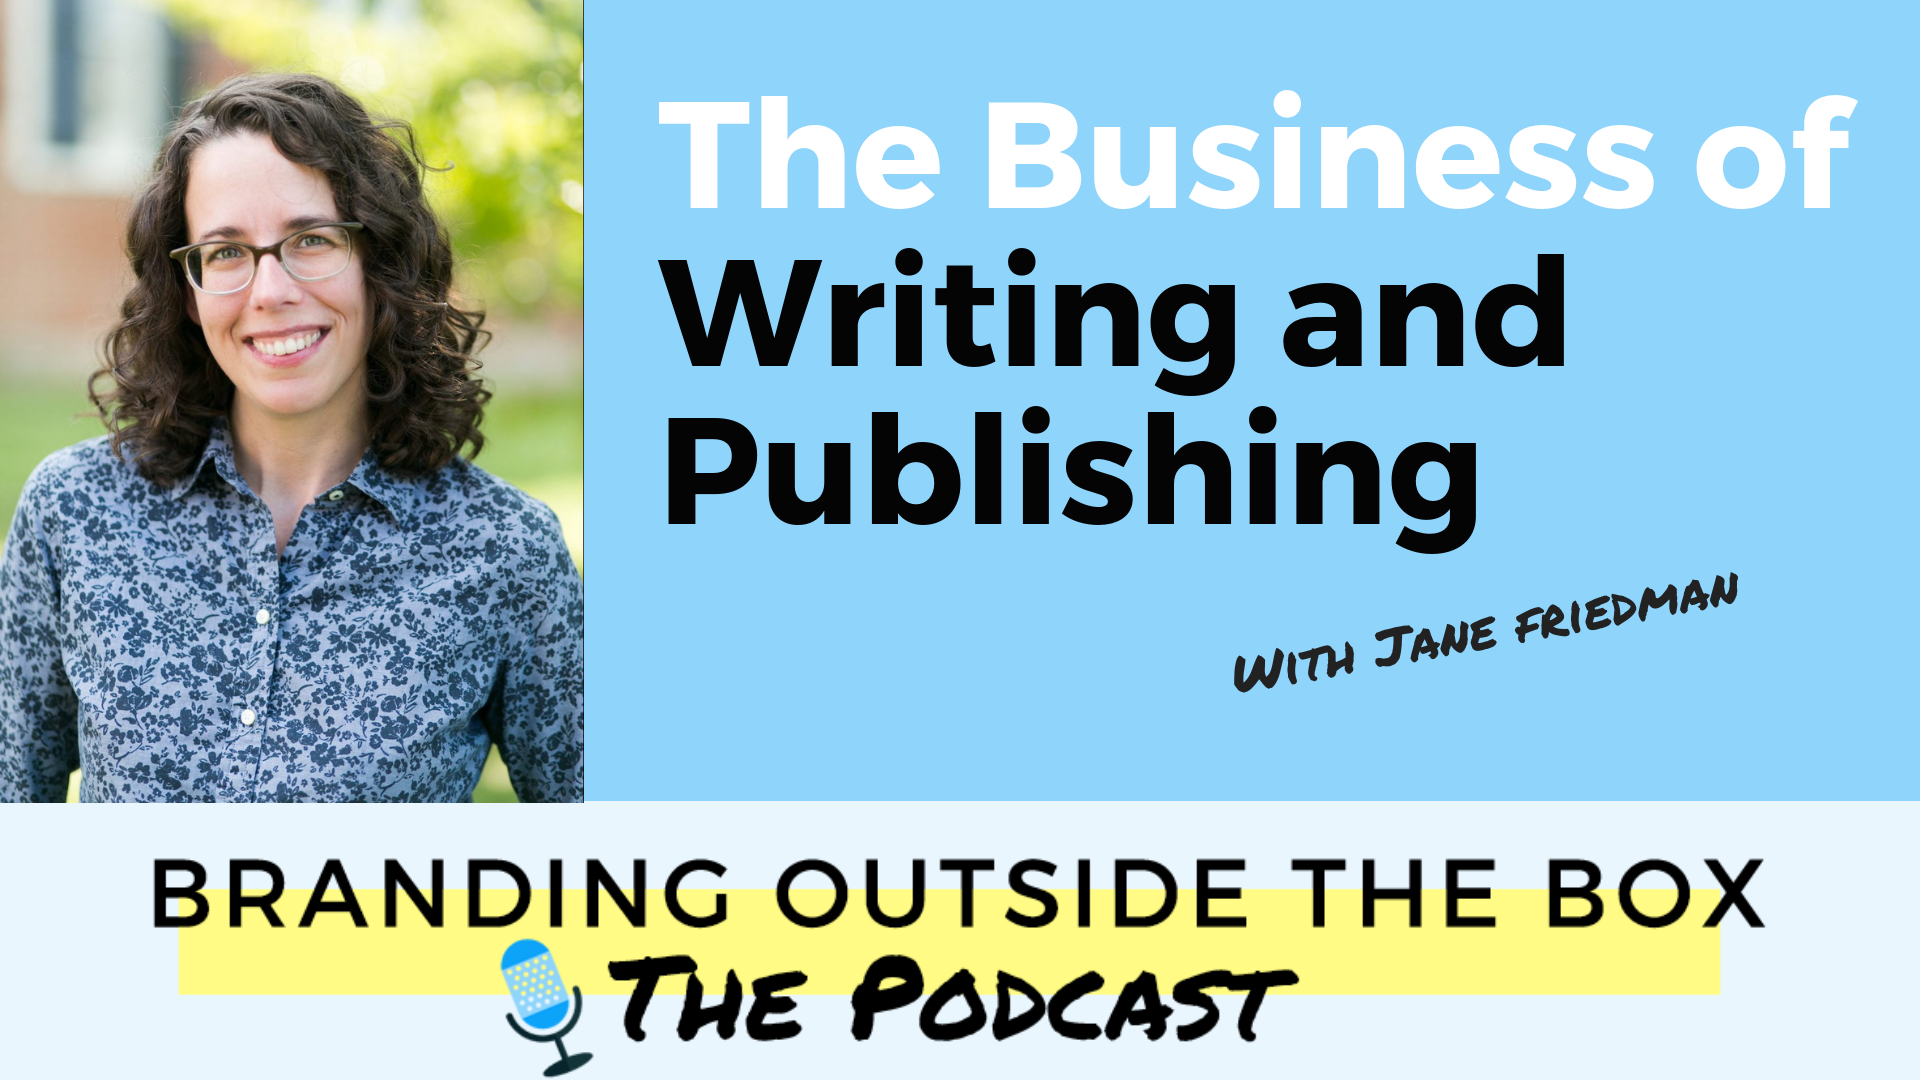 The Business of Writing and Publishing